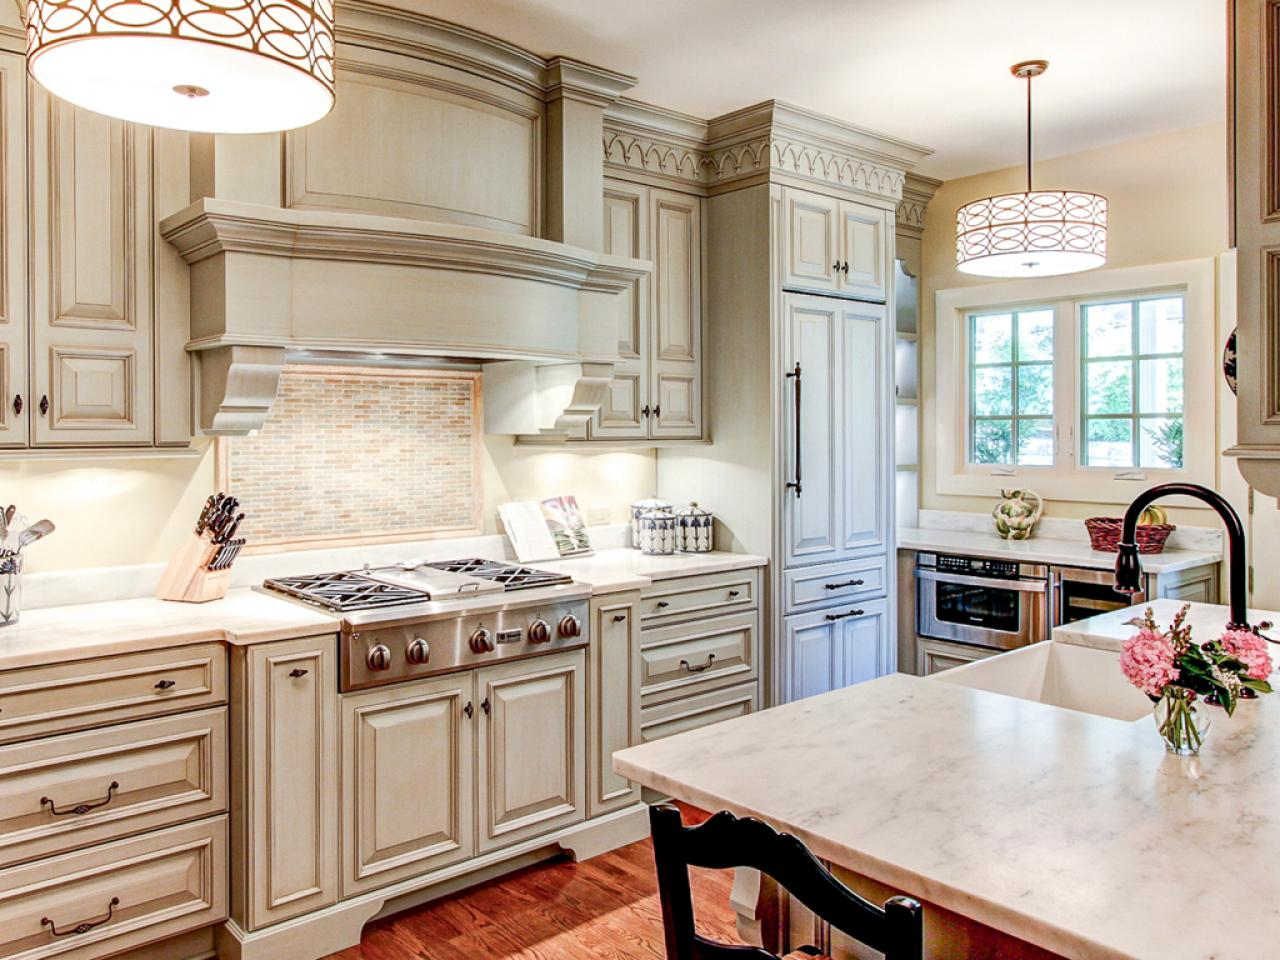 Uncategorized White Cabinets Kitchen best way to paint kitchen cabinets hgtv pictures ideas hgtv